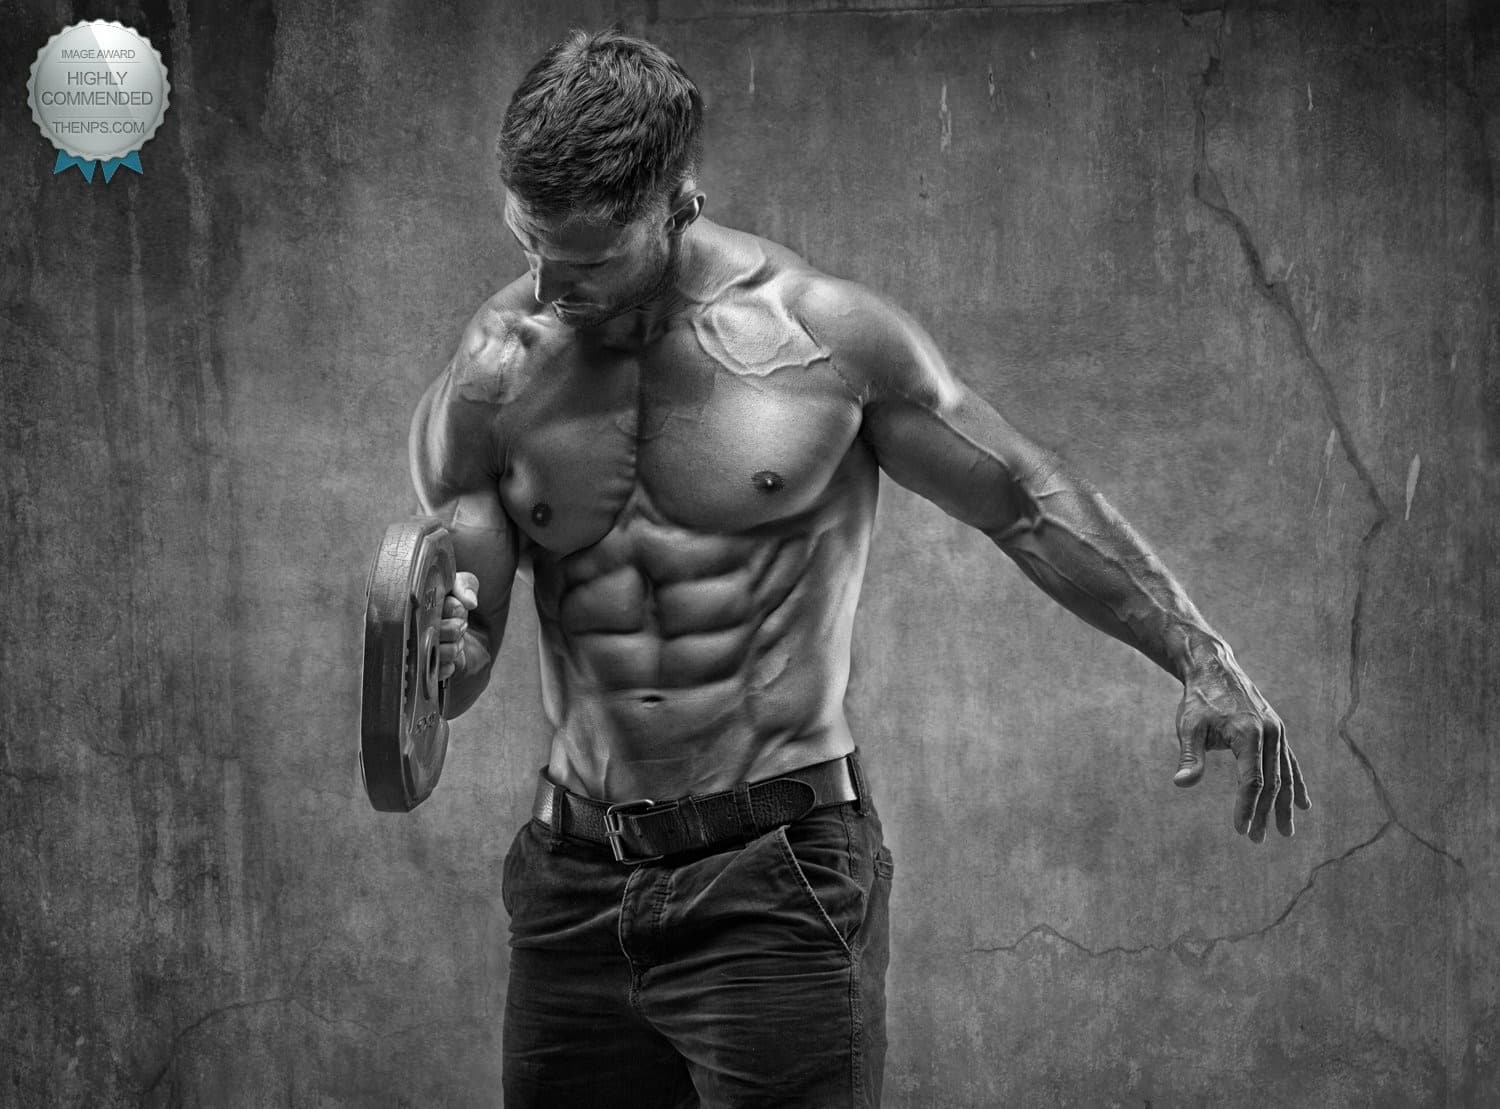 NPS Highly commended fitness photography